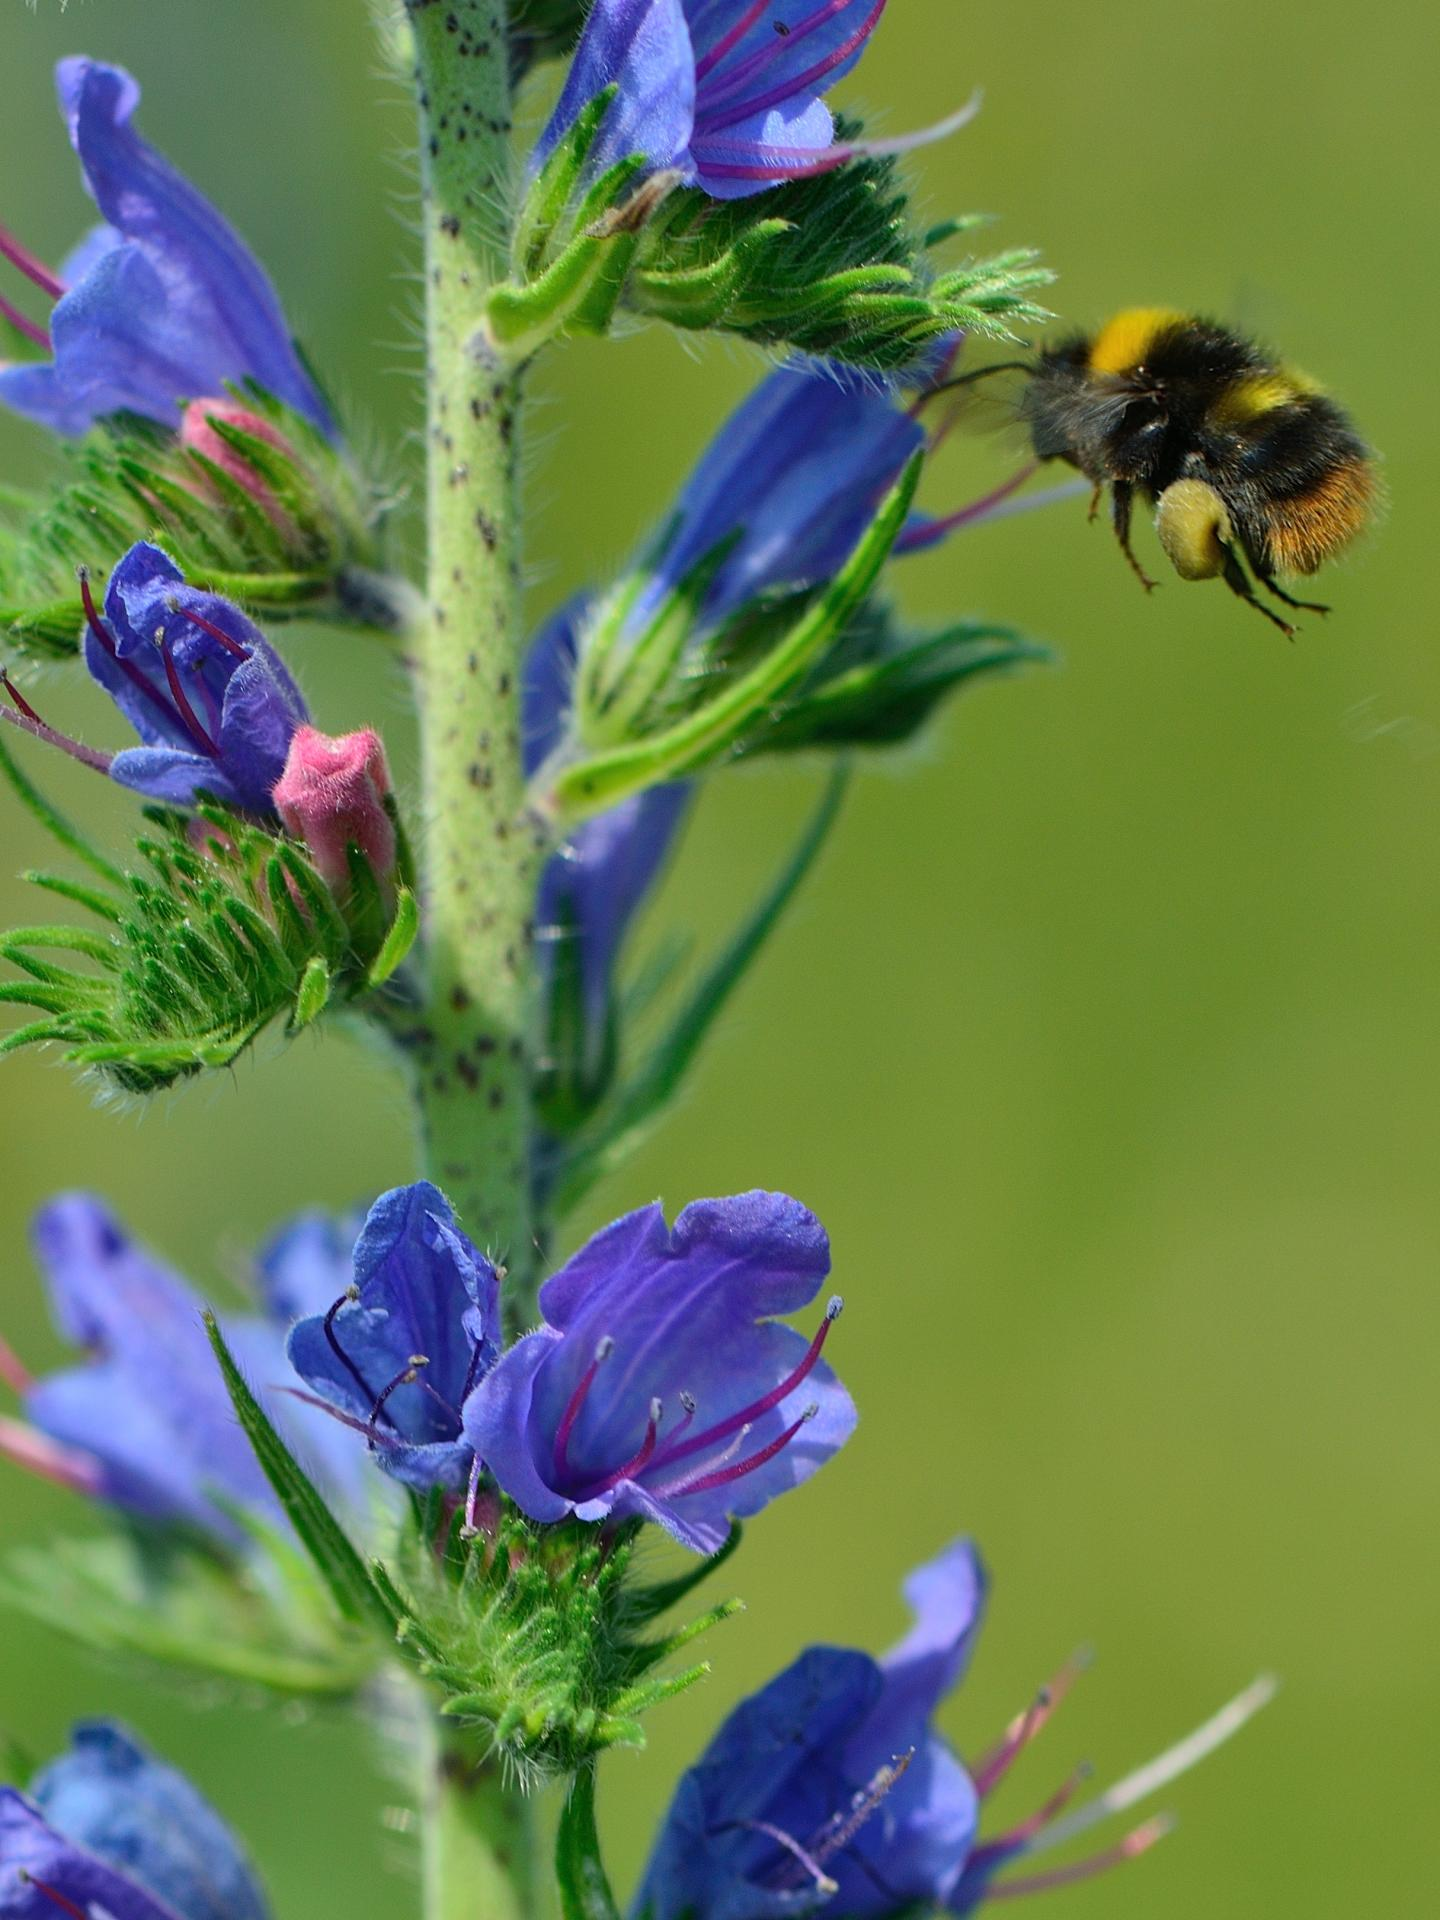 The Bumble Bee Collects Pollen